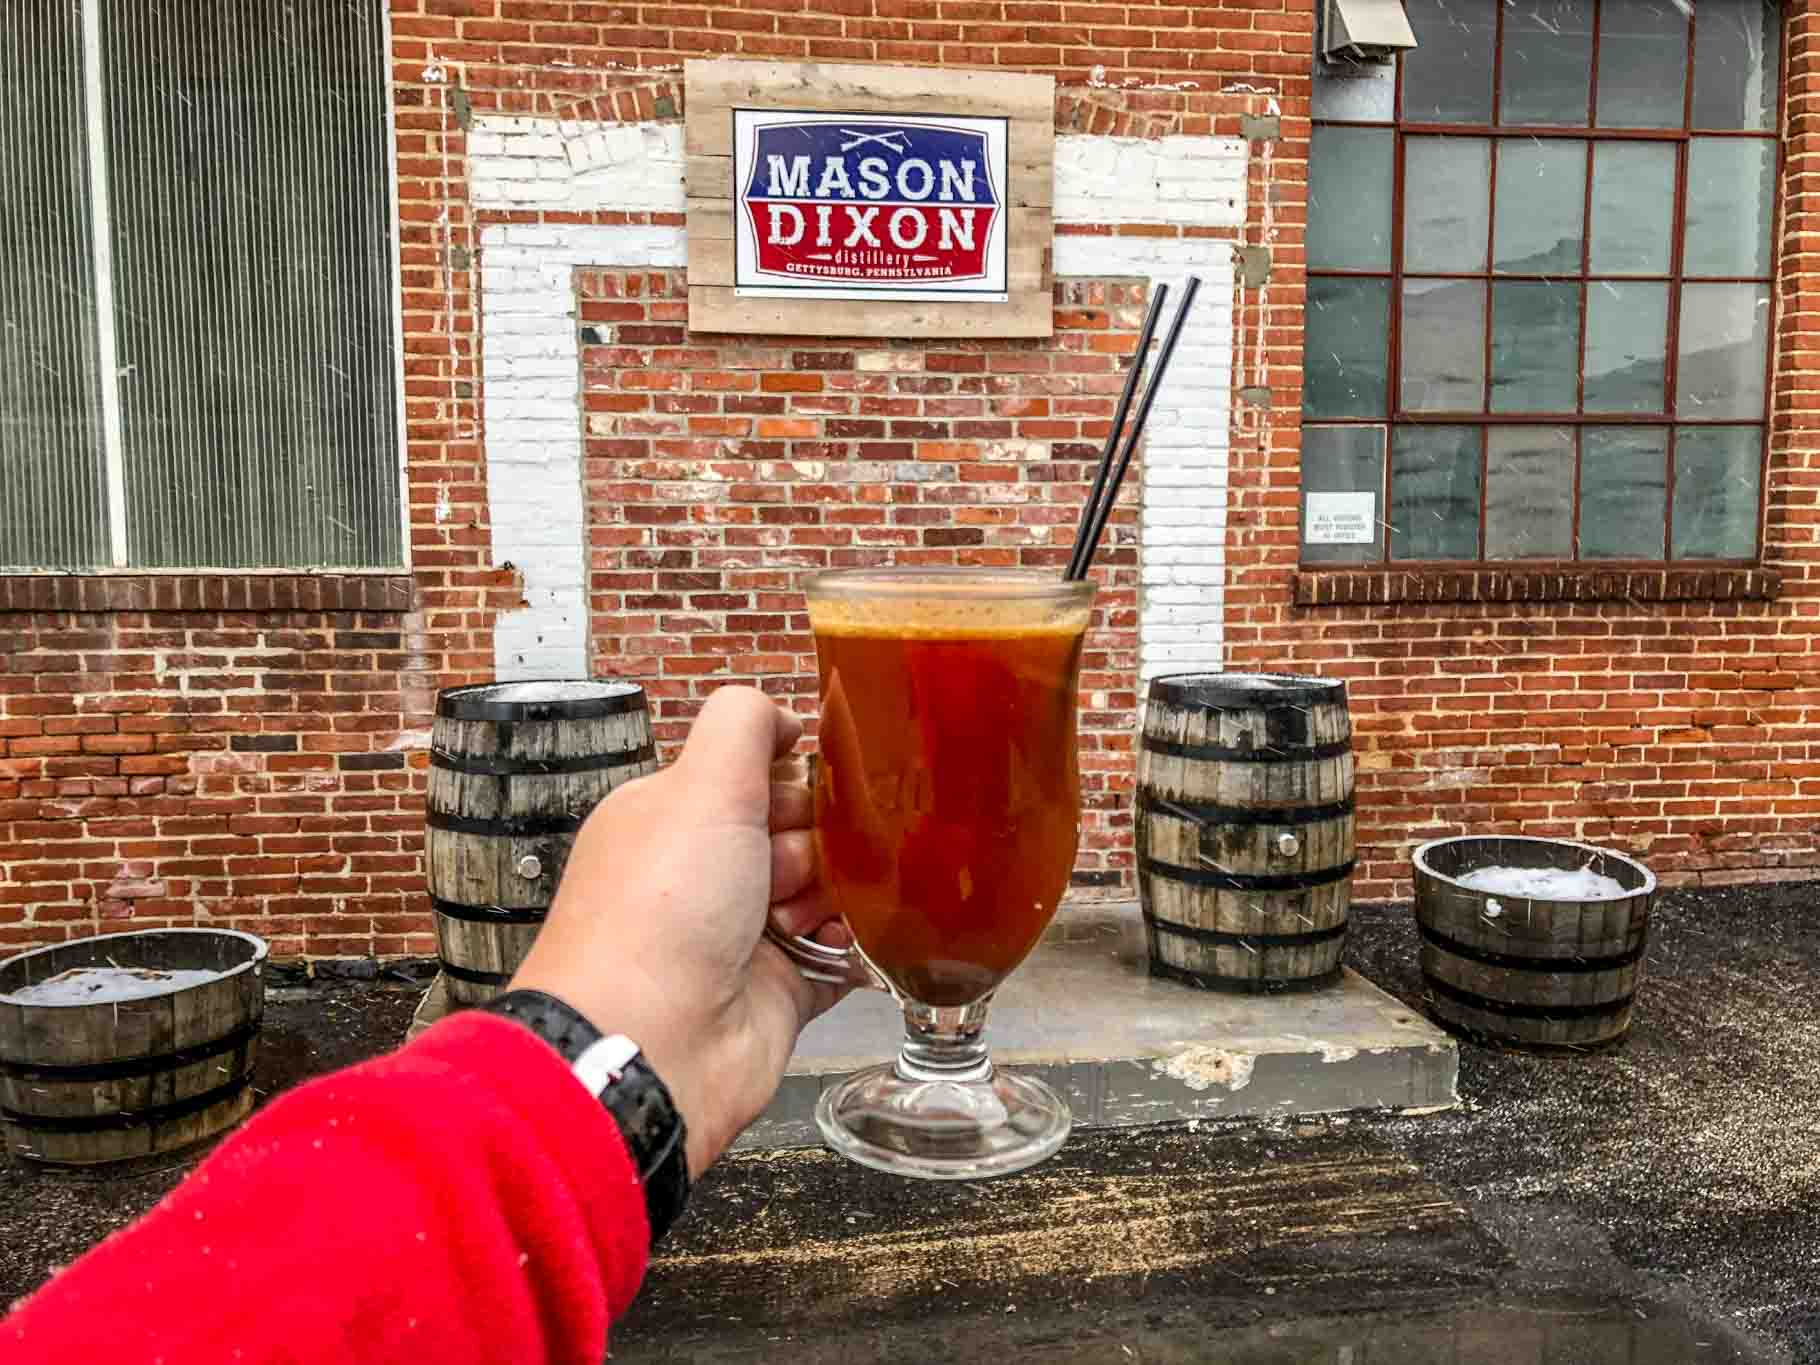 Cocktail in front of sign for Mason Dixon Distillery in Gettysburg, Pennsylvania